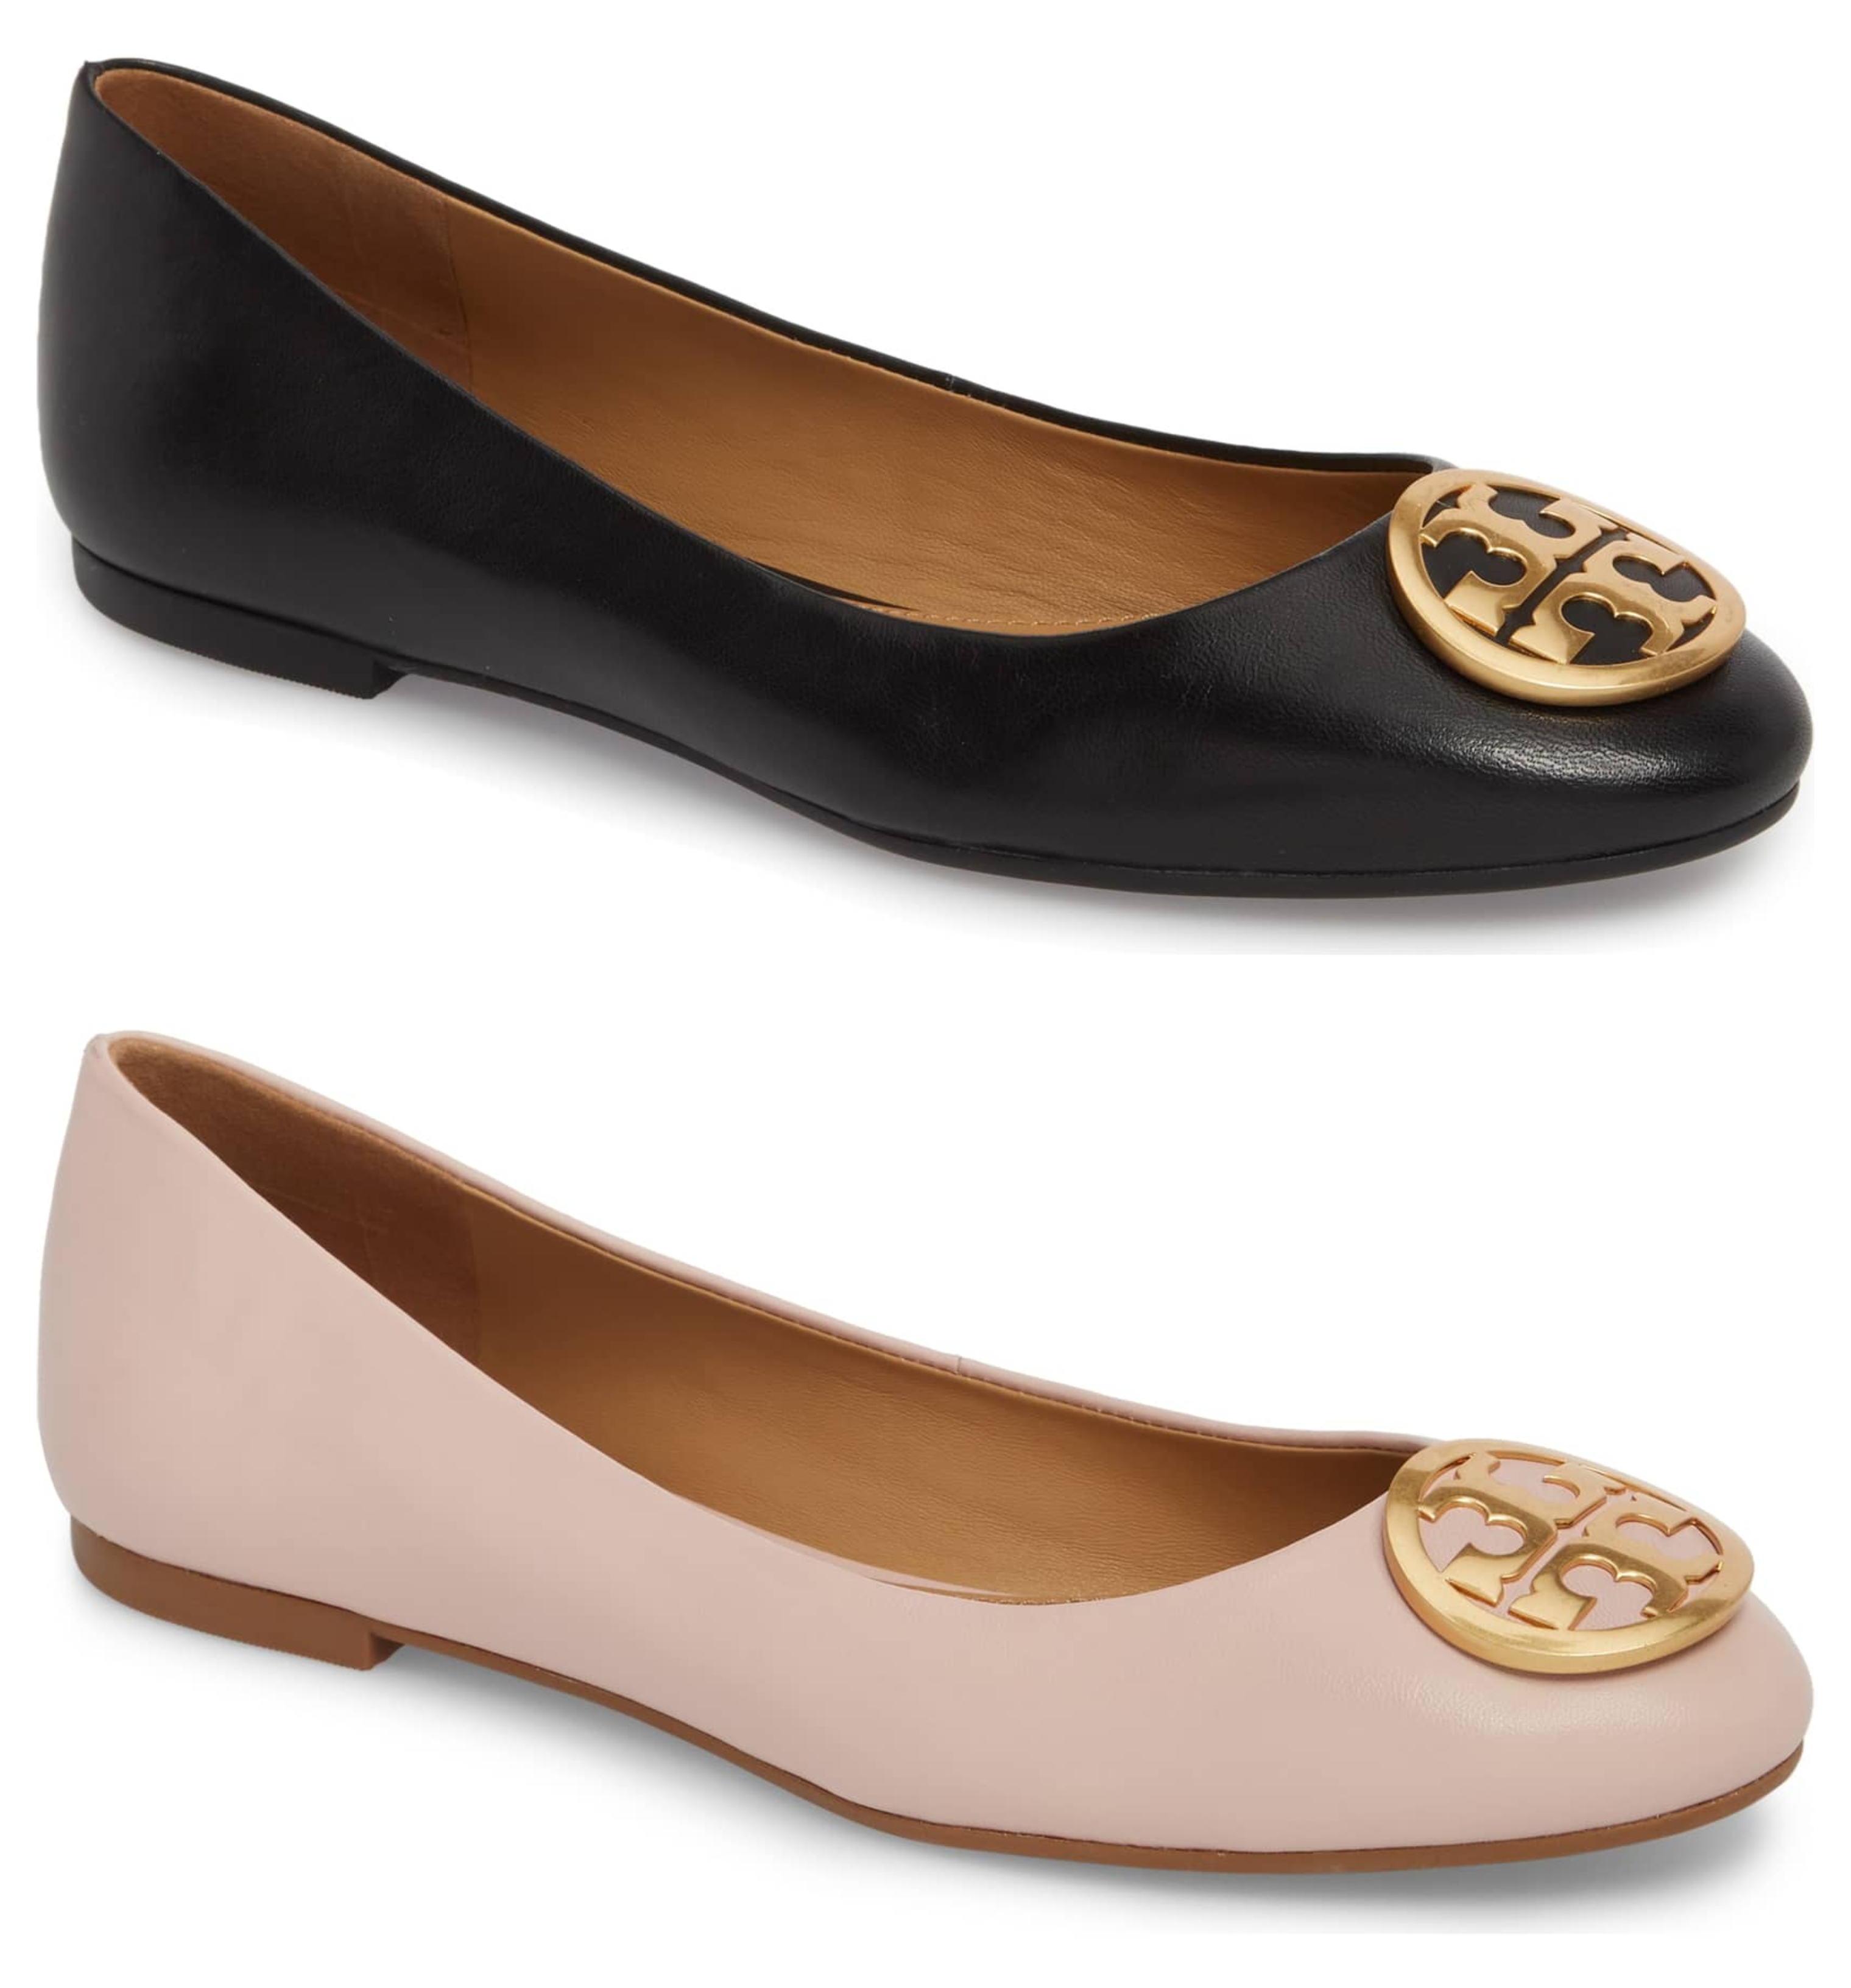 41ccea62f630 Nordstrom  Tory Burch Benton Flats – 35% off + Free Shipping! – Wear ...